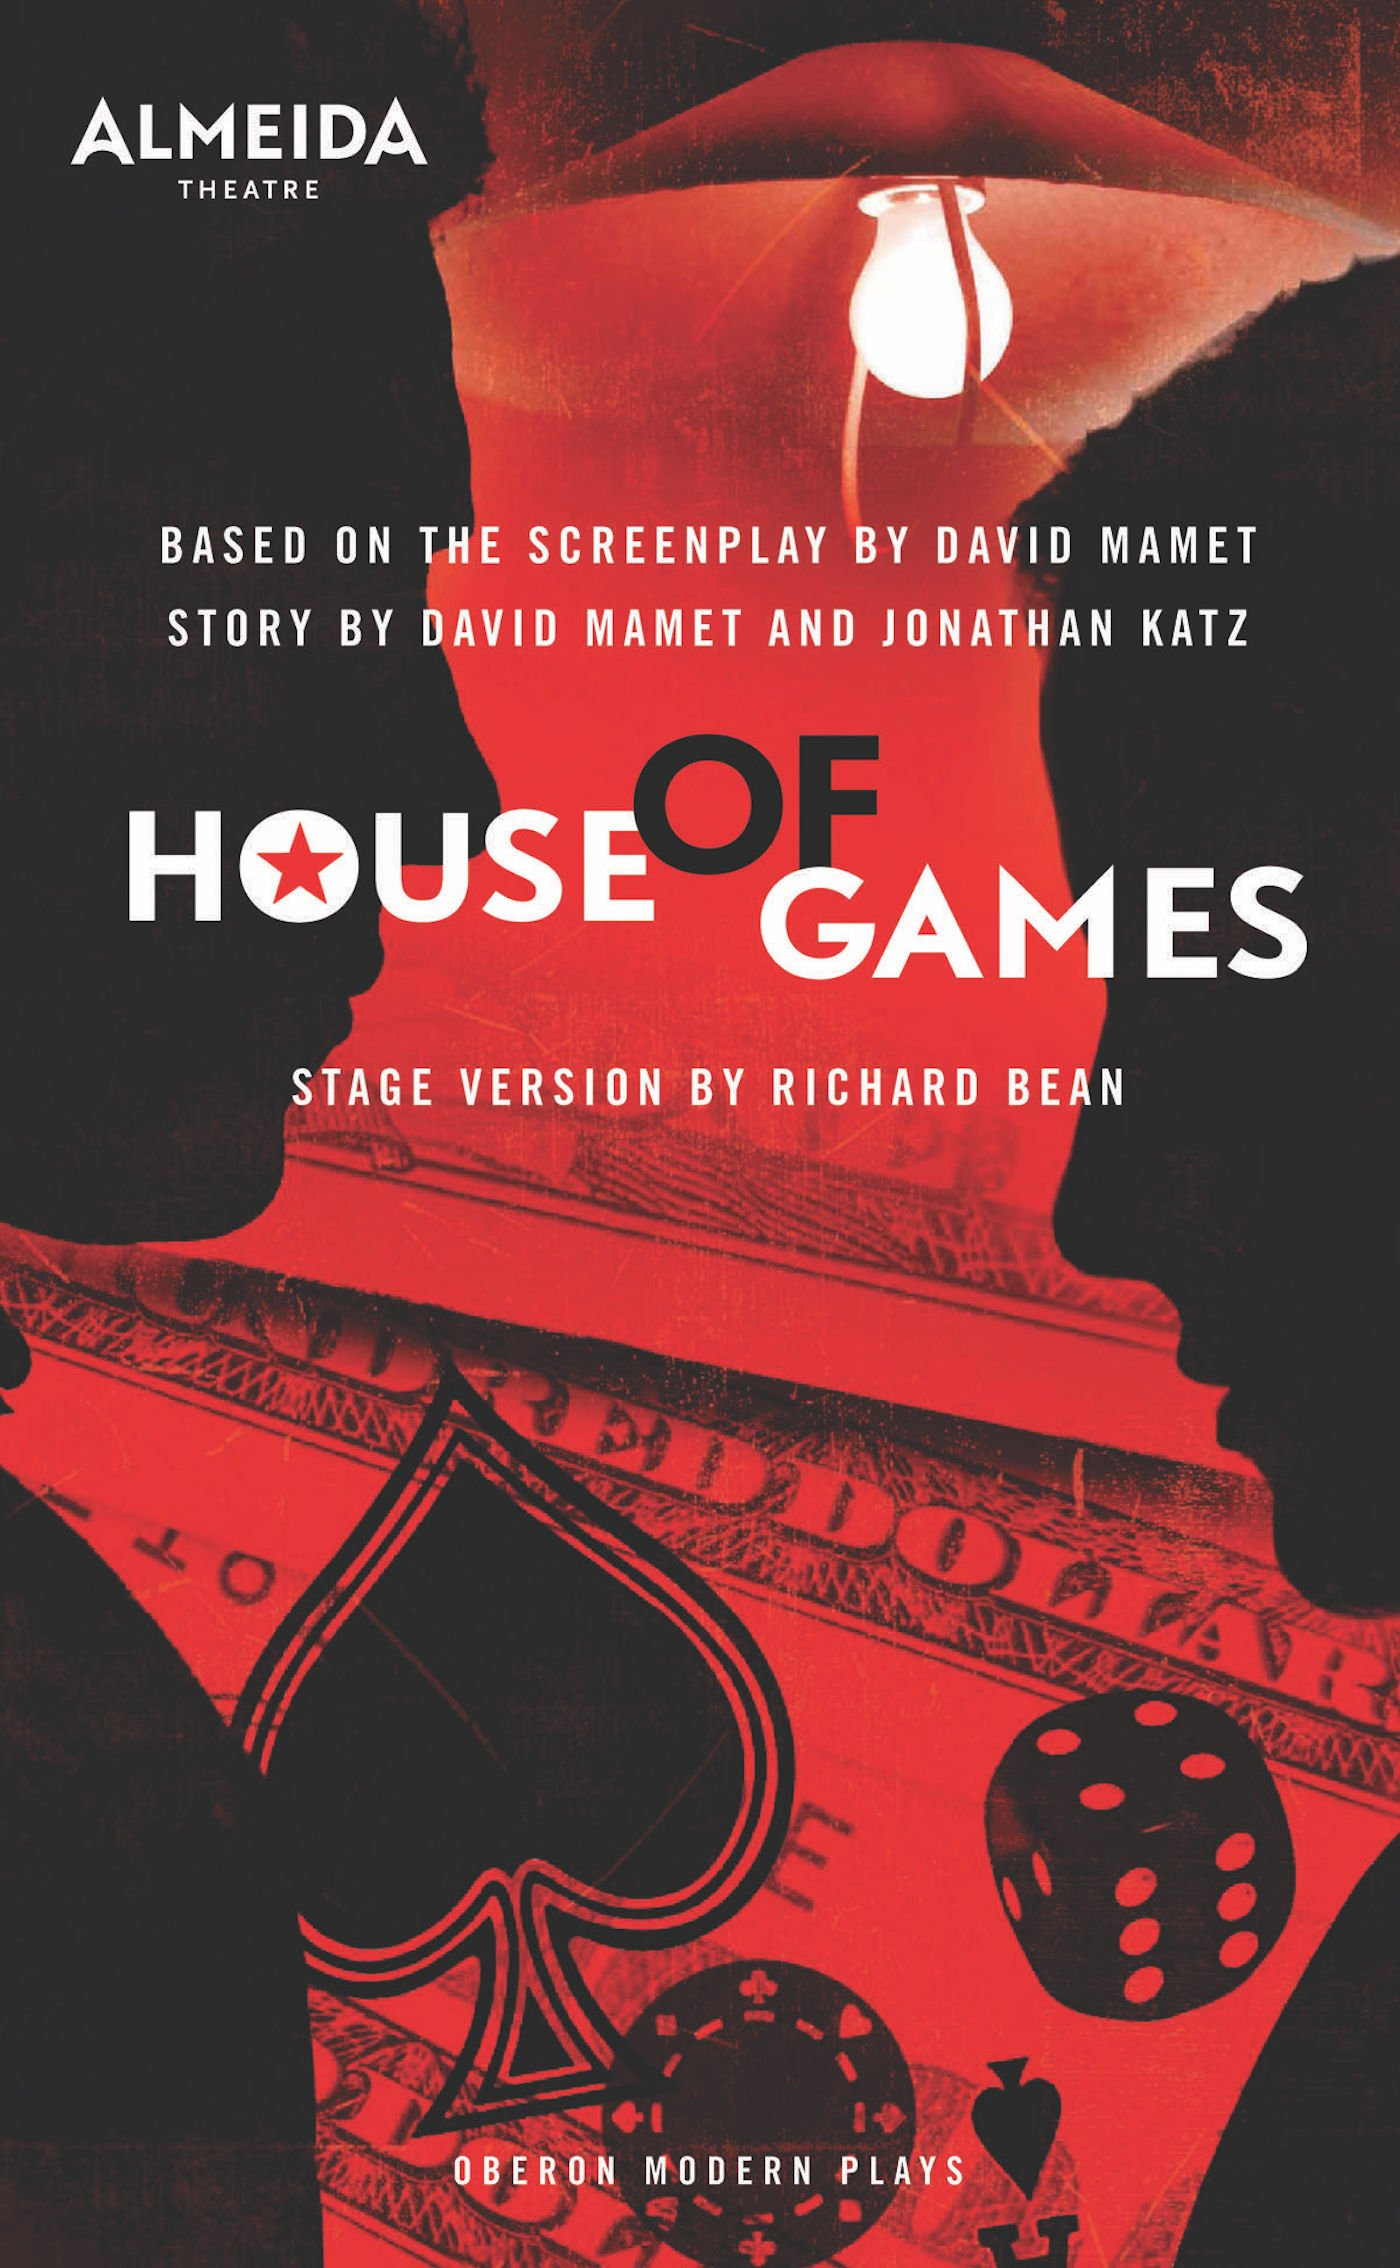 House of games oberon modern plays richard bean david mamet house of games oberon modern plays richard bean david mamet 9781849430081 amazon books fandeluxe Gallery